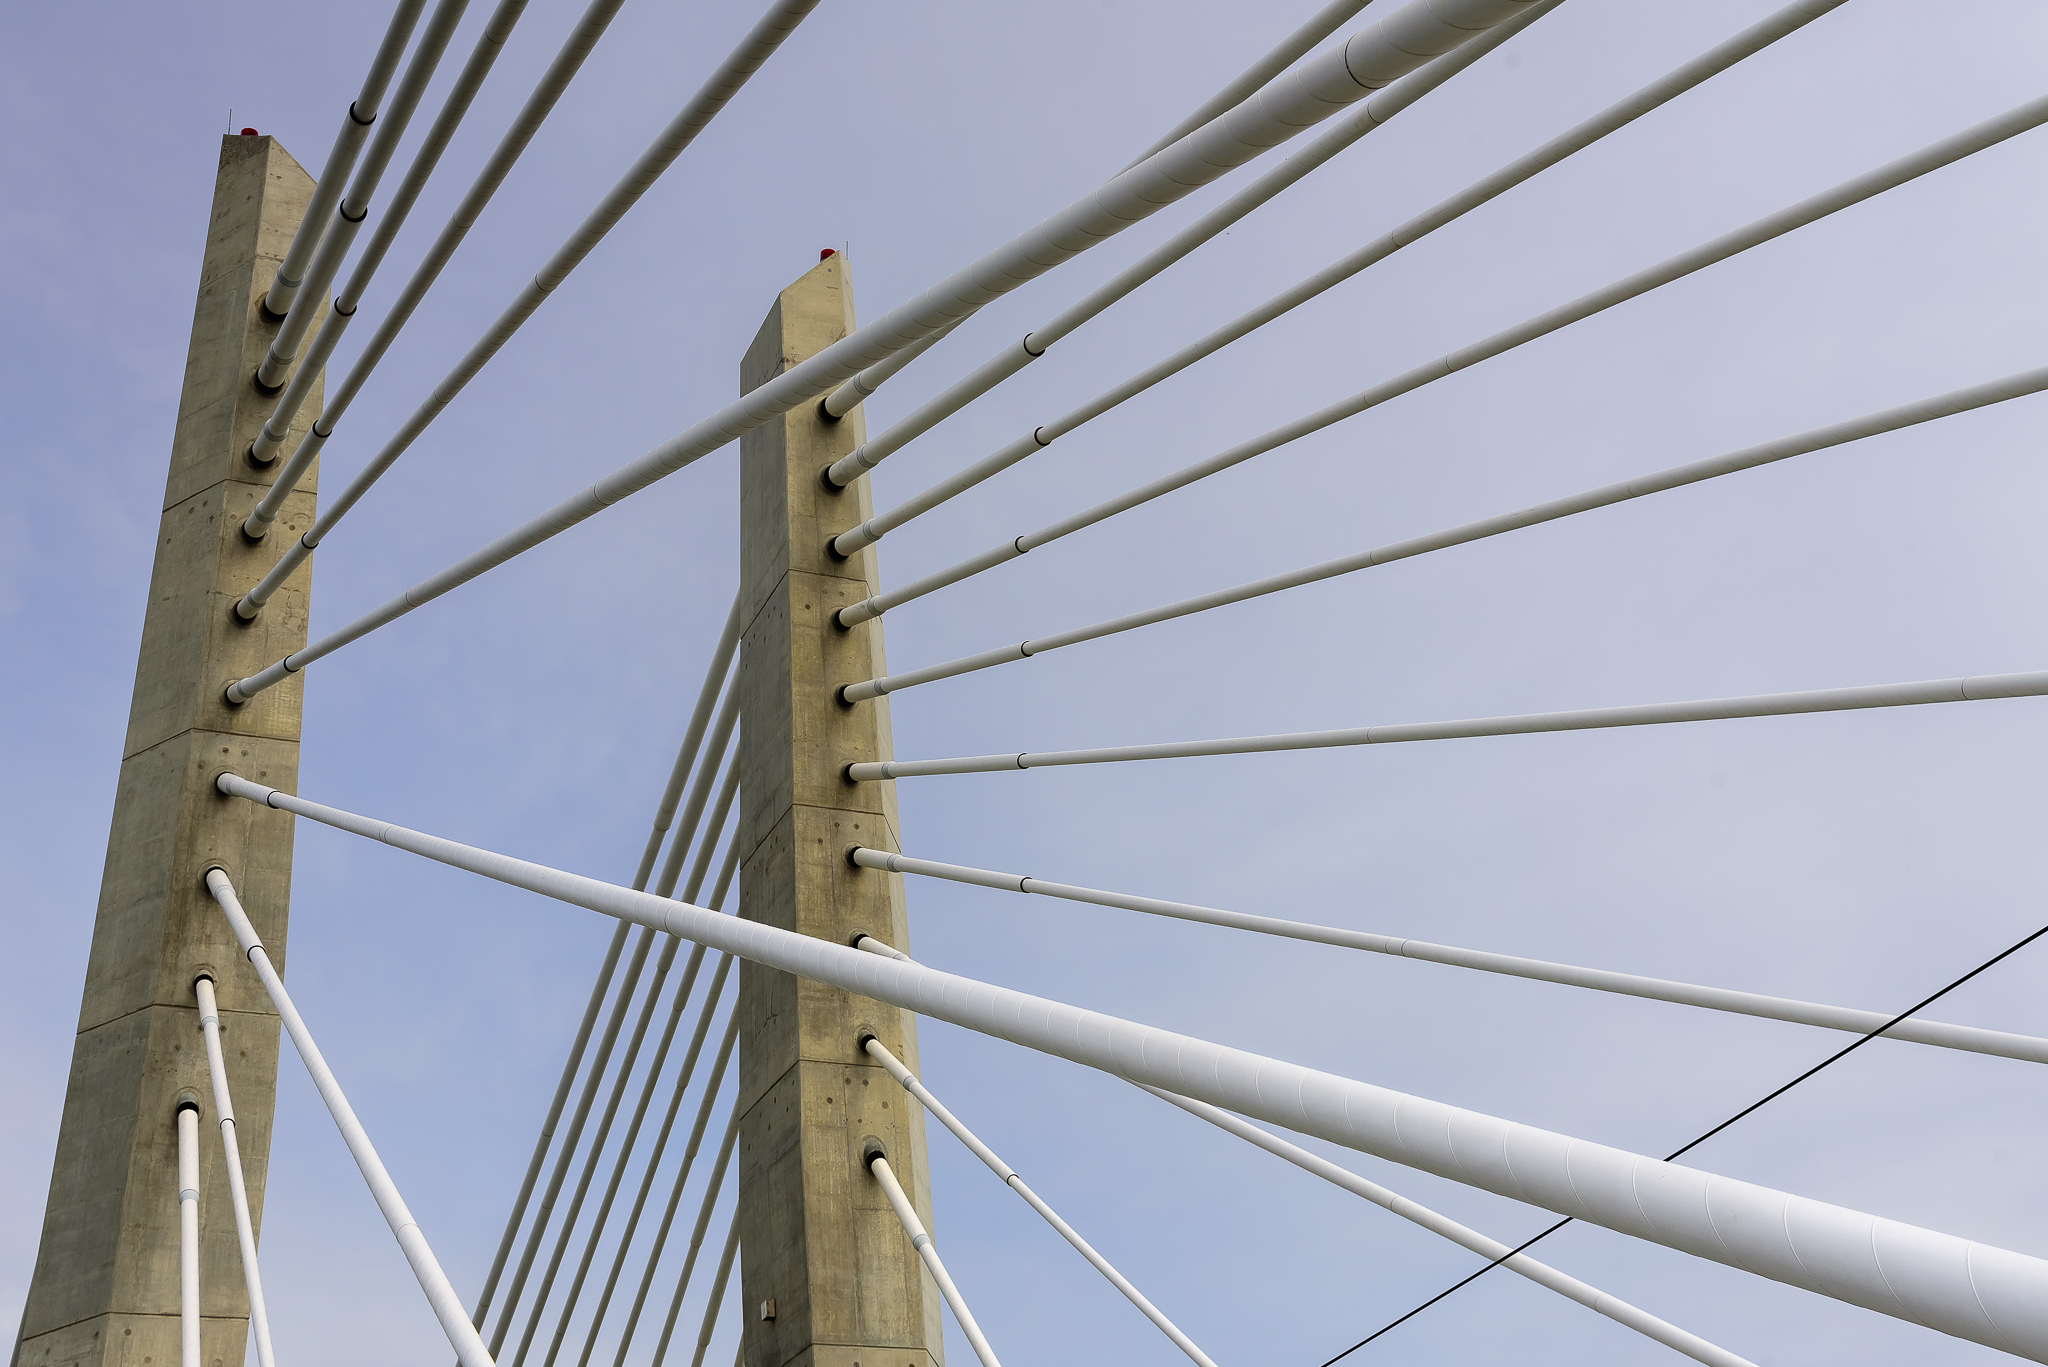 They almost look climbable. Tilikum Crossing, Central Portland.